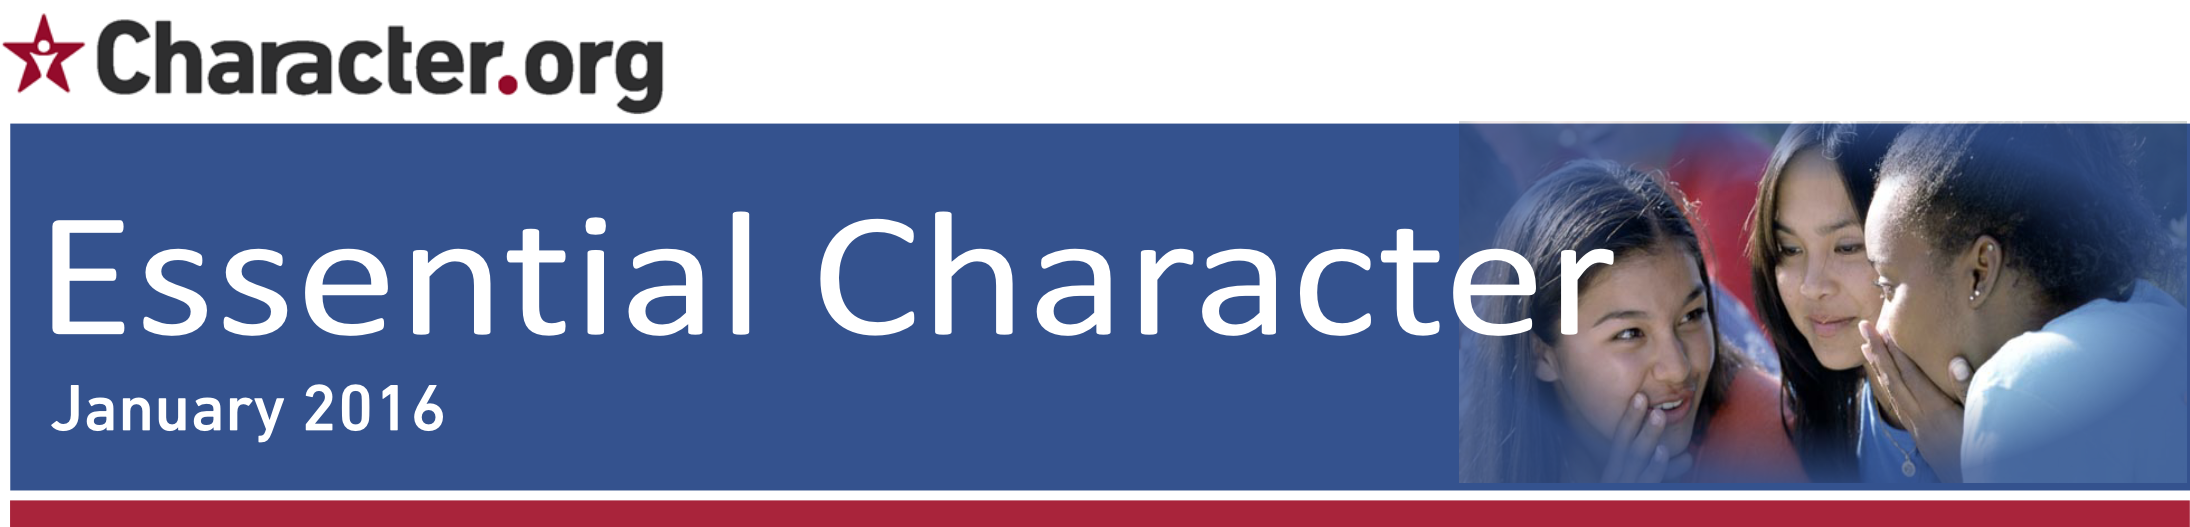 Essential Character Banner_Jan 2016